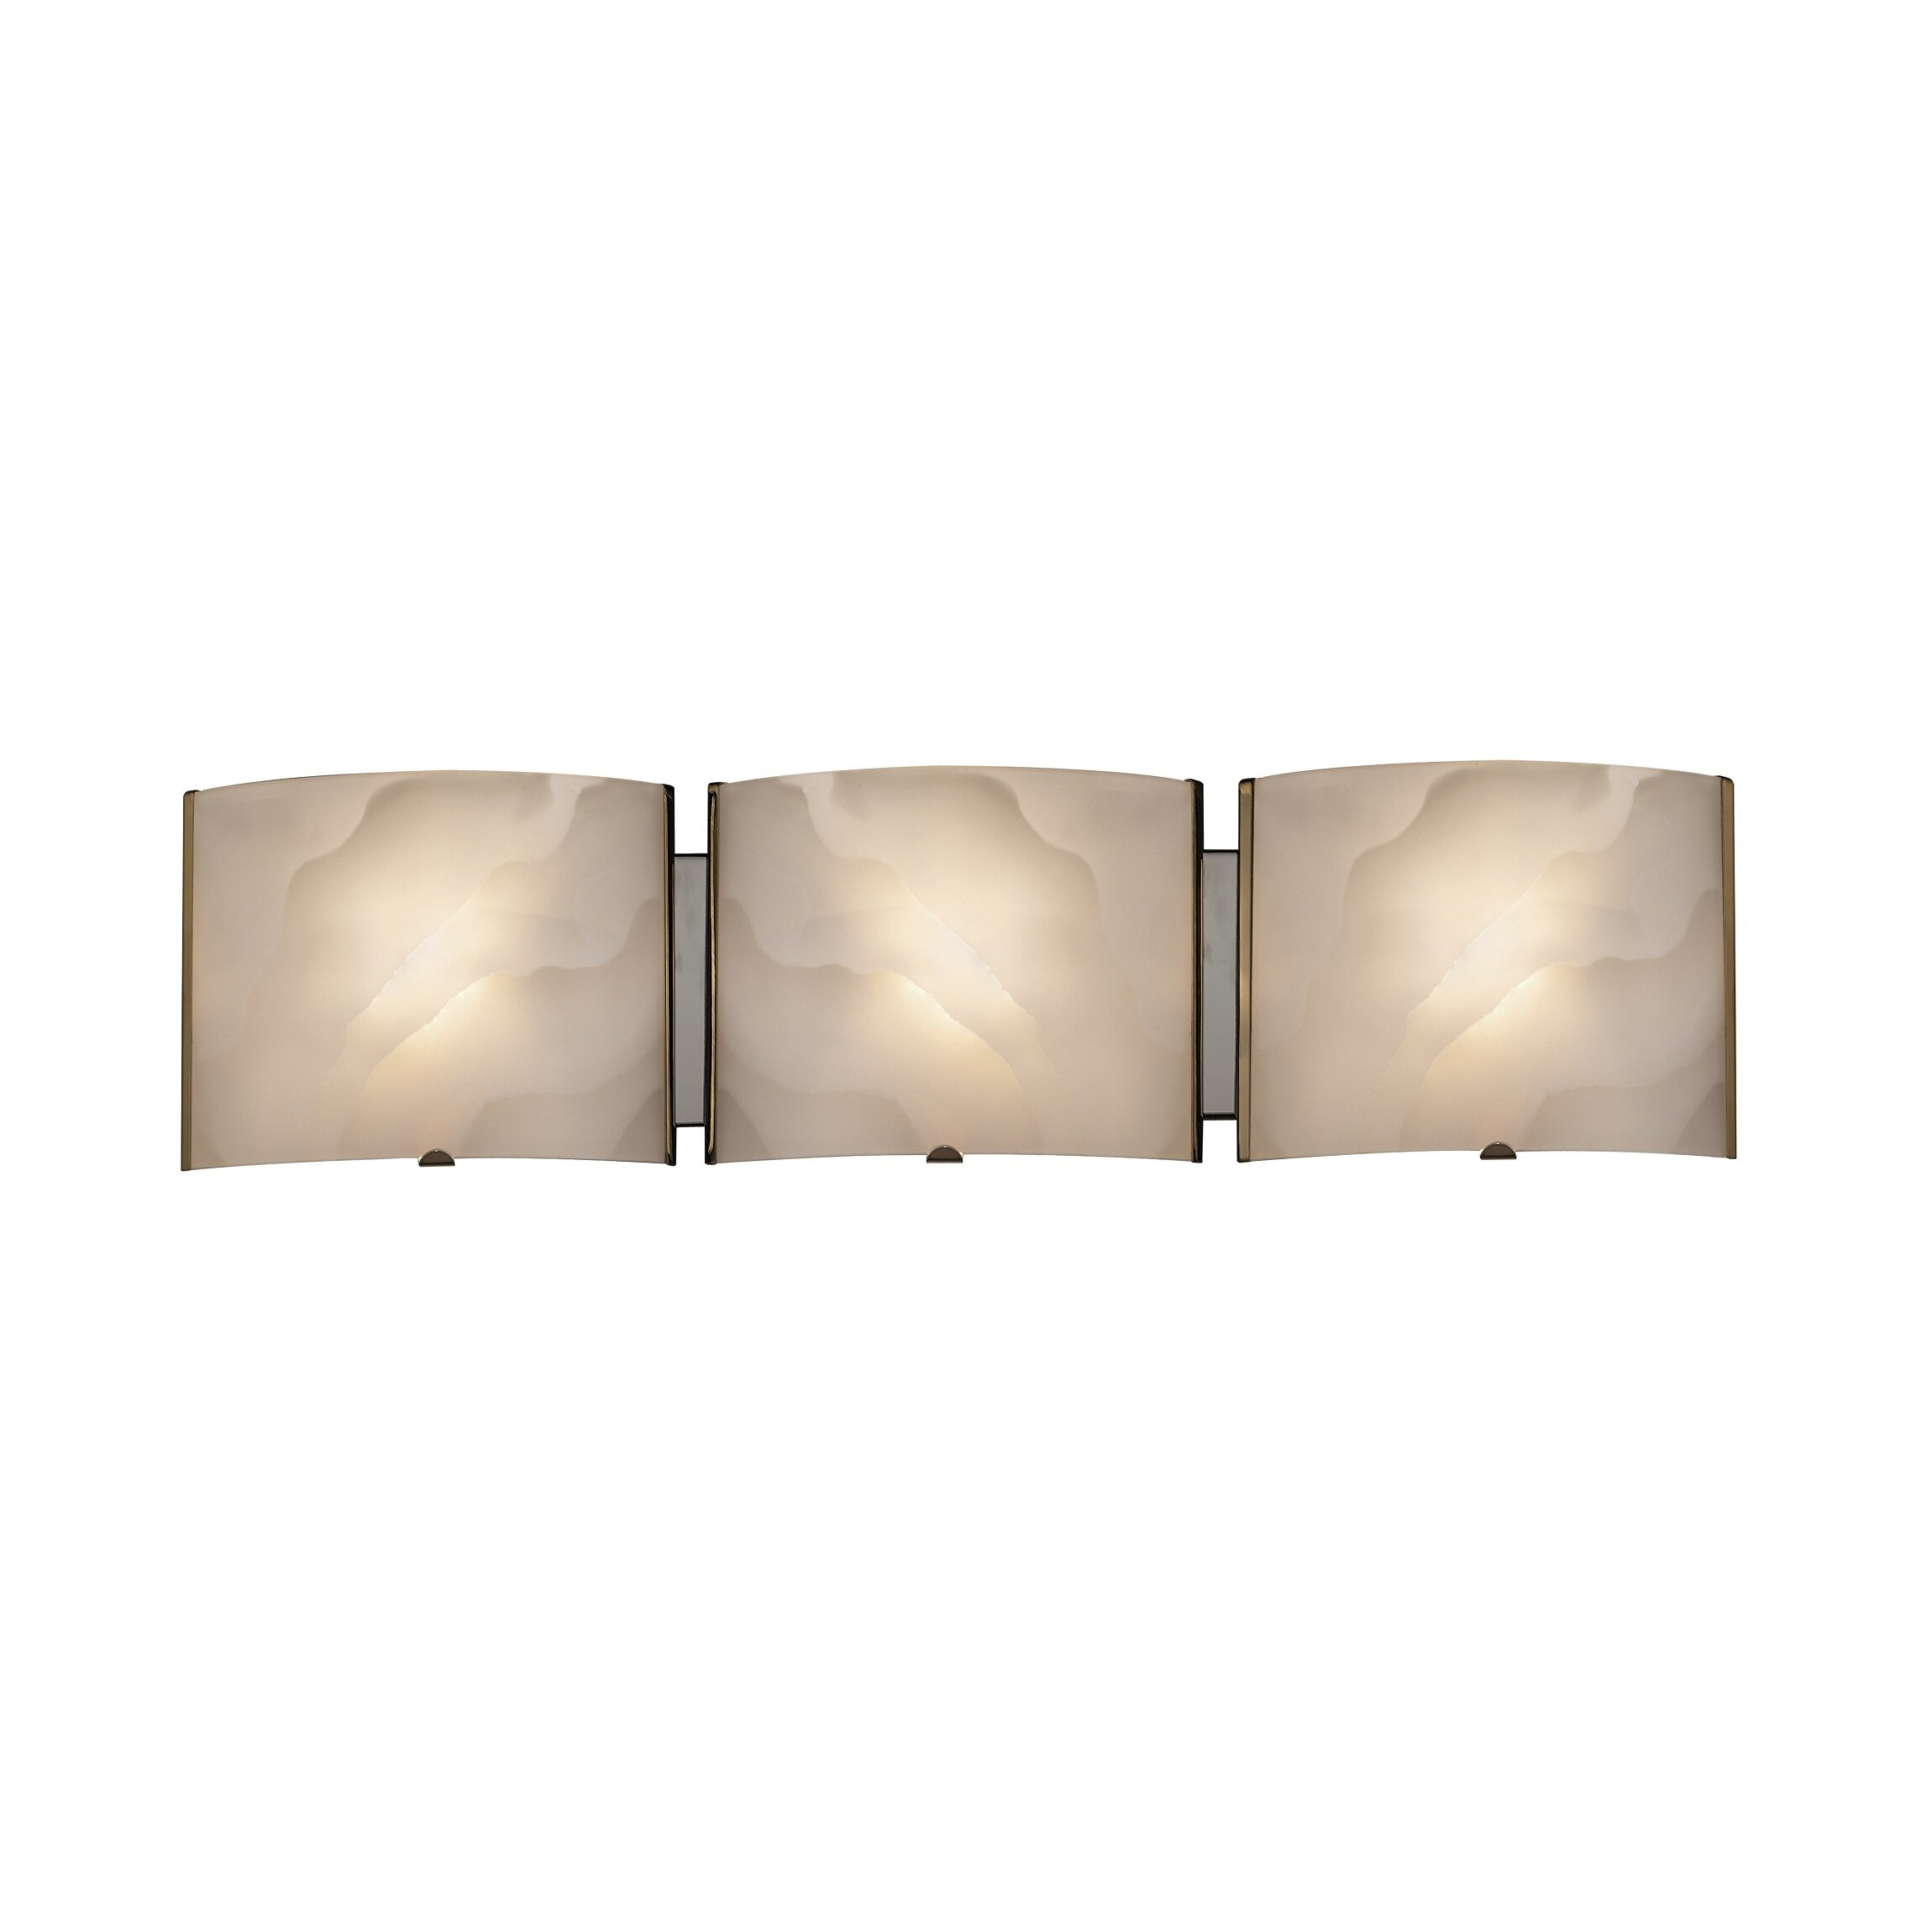 Chloe Lighting Transitional 3 Light Ampere Bath Vanity Light & Reviews Wayfair